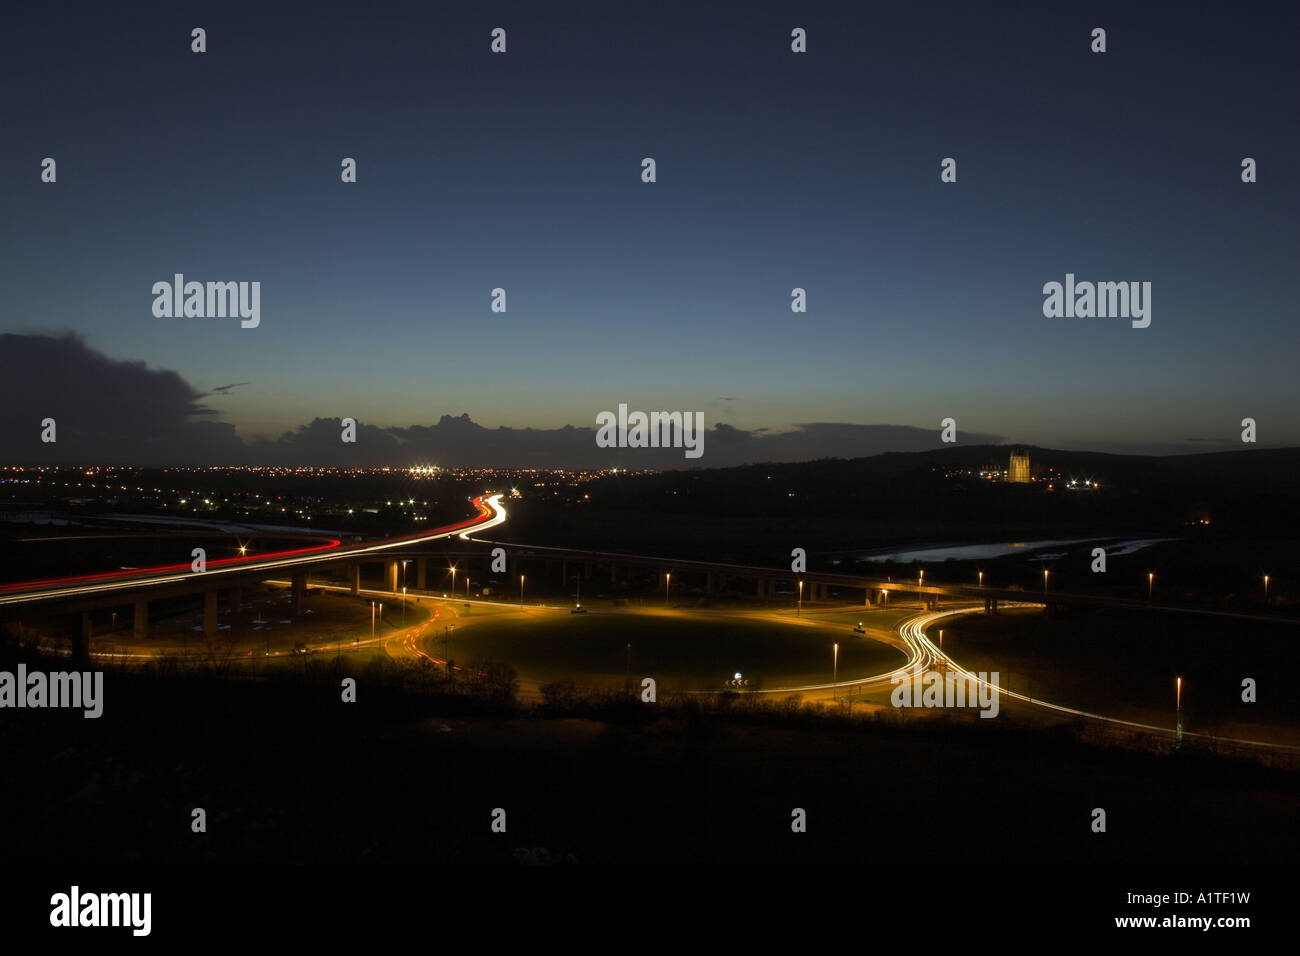 Light trails on the A27 Shoreham flyover / interchange - Shoreham by Sea, West Sussex, UK. Stock Photo